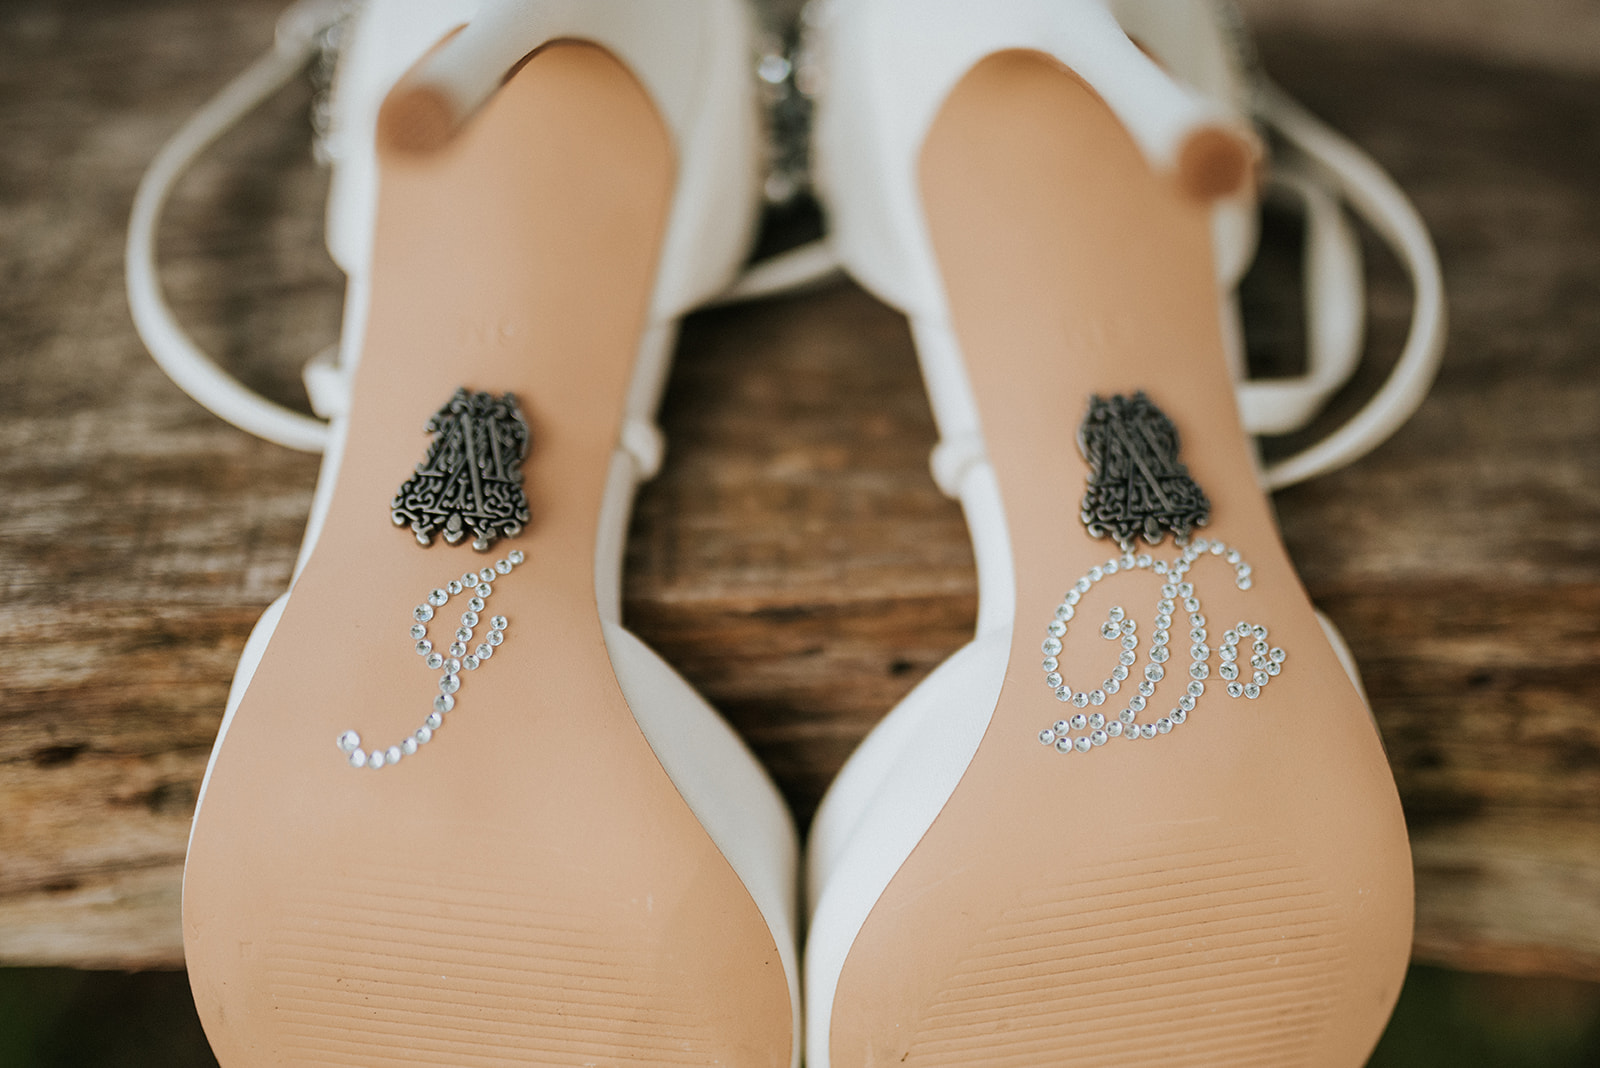 overthevineswisconsinwedding_0196.jpg